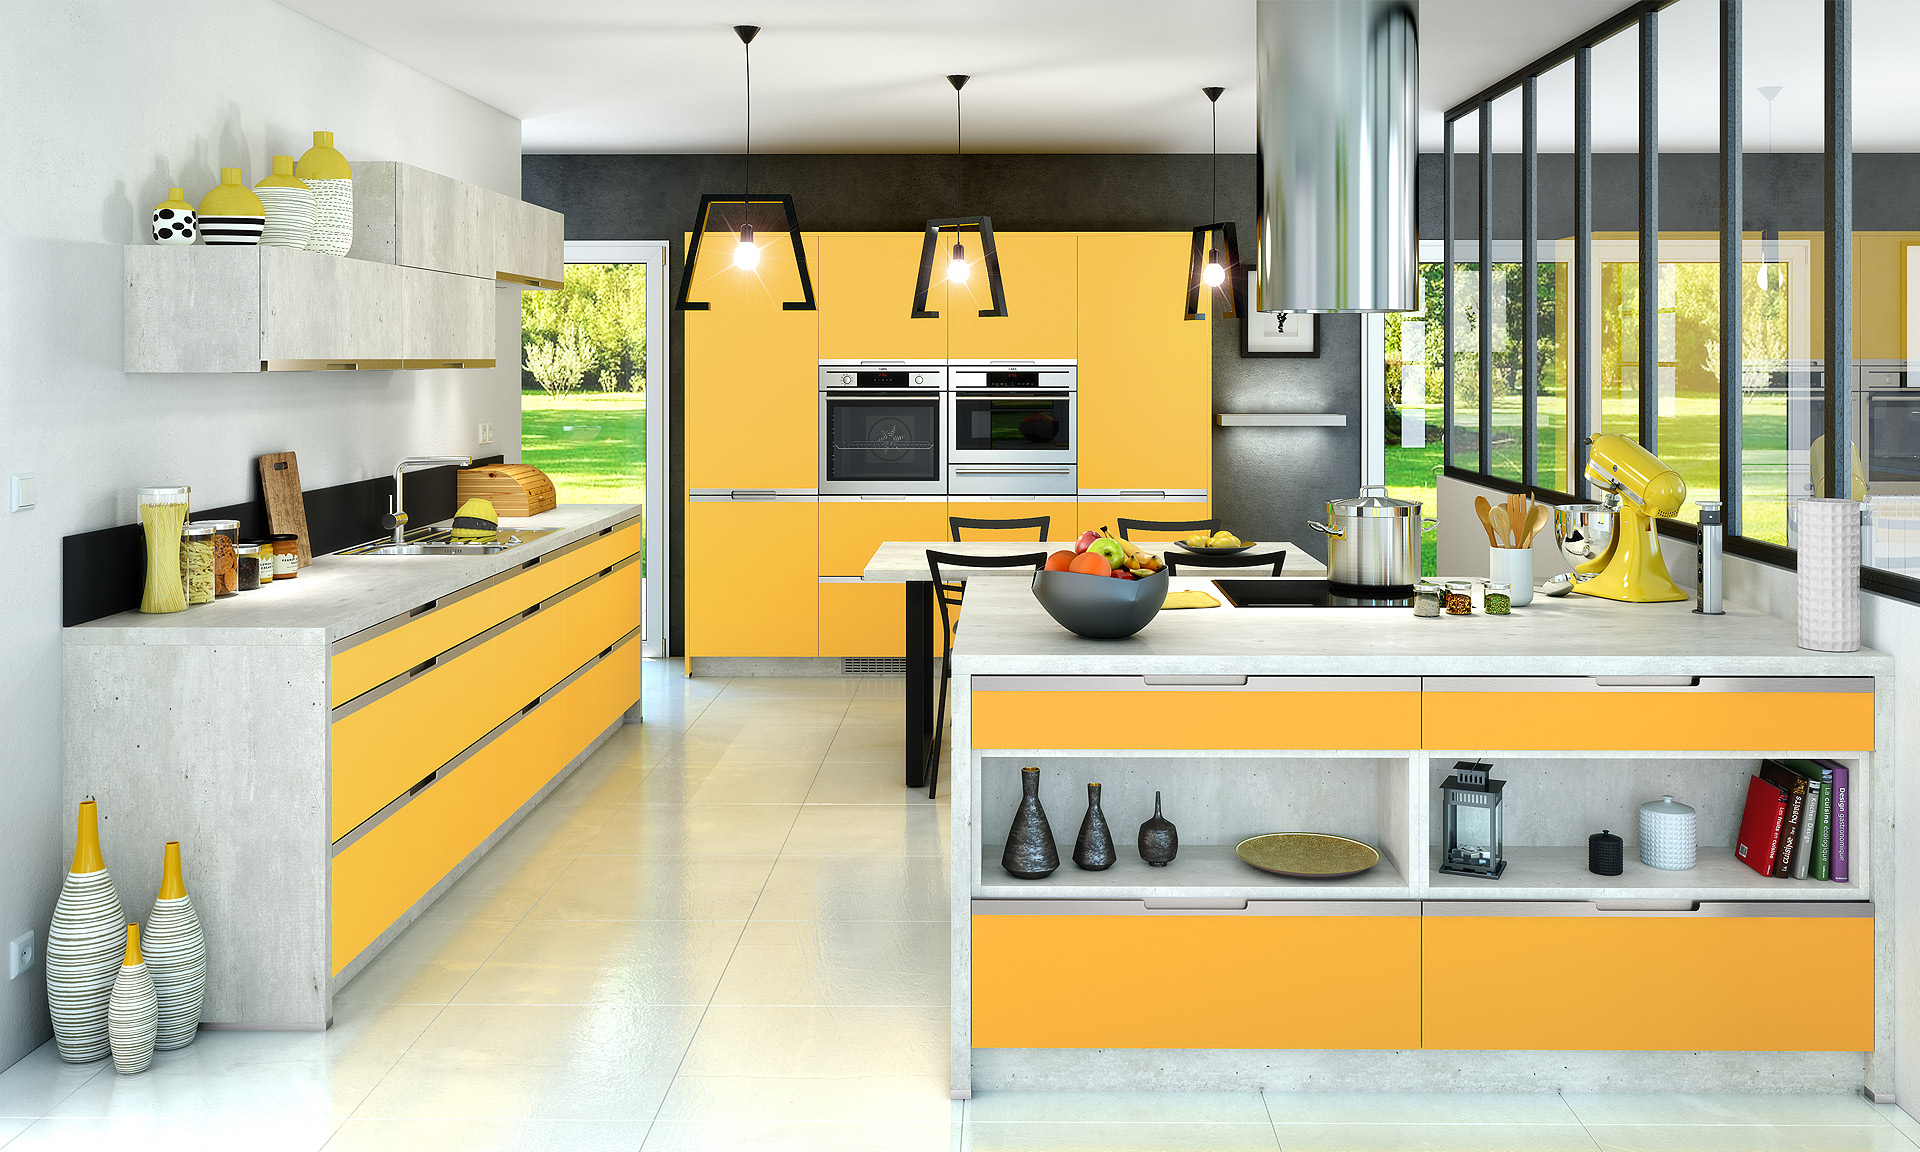 radieuse la cuisine toundra en coloris jaune curcuma illumine la pi ce. Black Bedroom Furniture Sets. Home Design Ideas